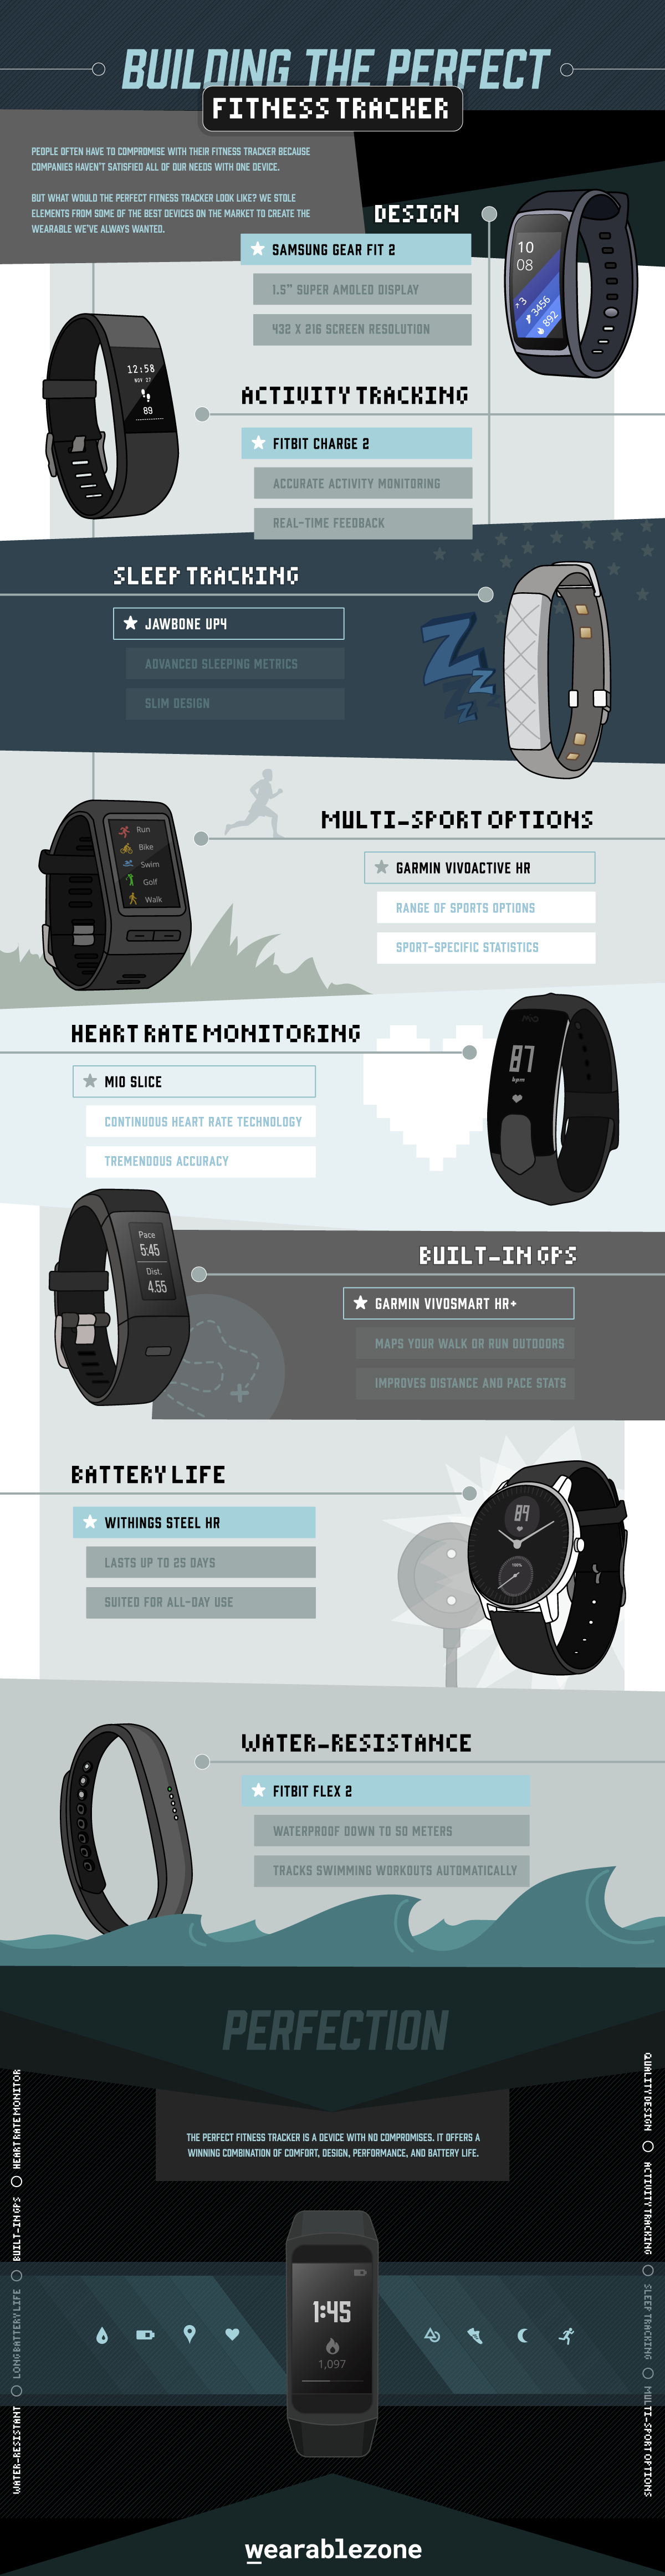 Fitness tracker infographic